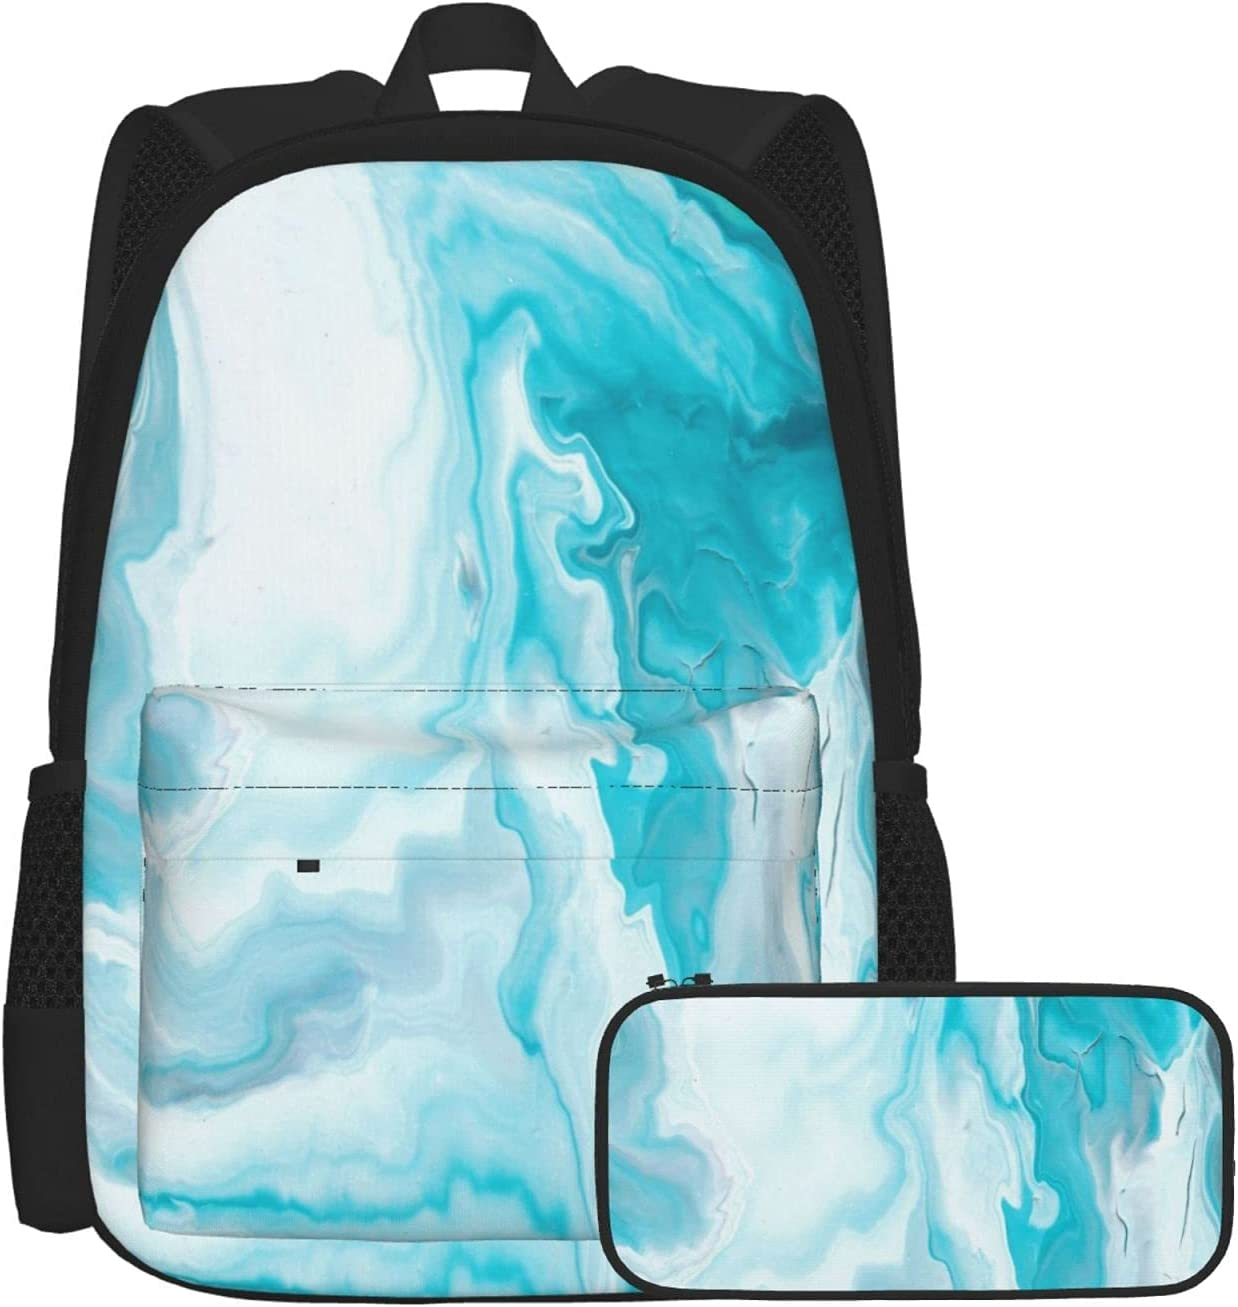 Gesdfwe Kids Backpack Year-end gift Blue Marble With Texture Great interest P School